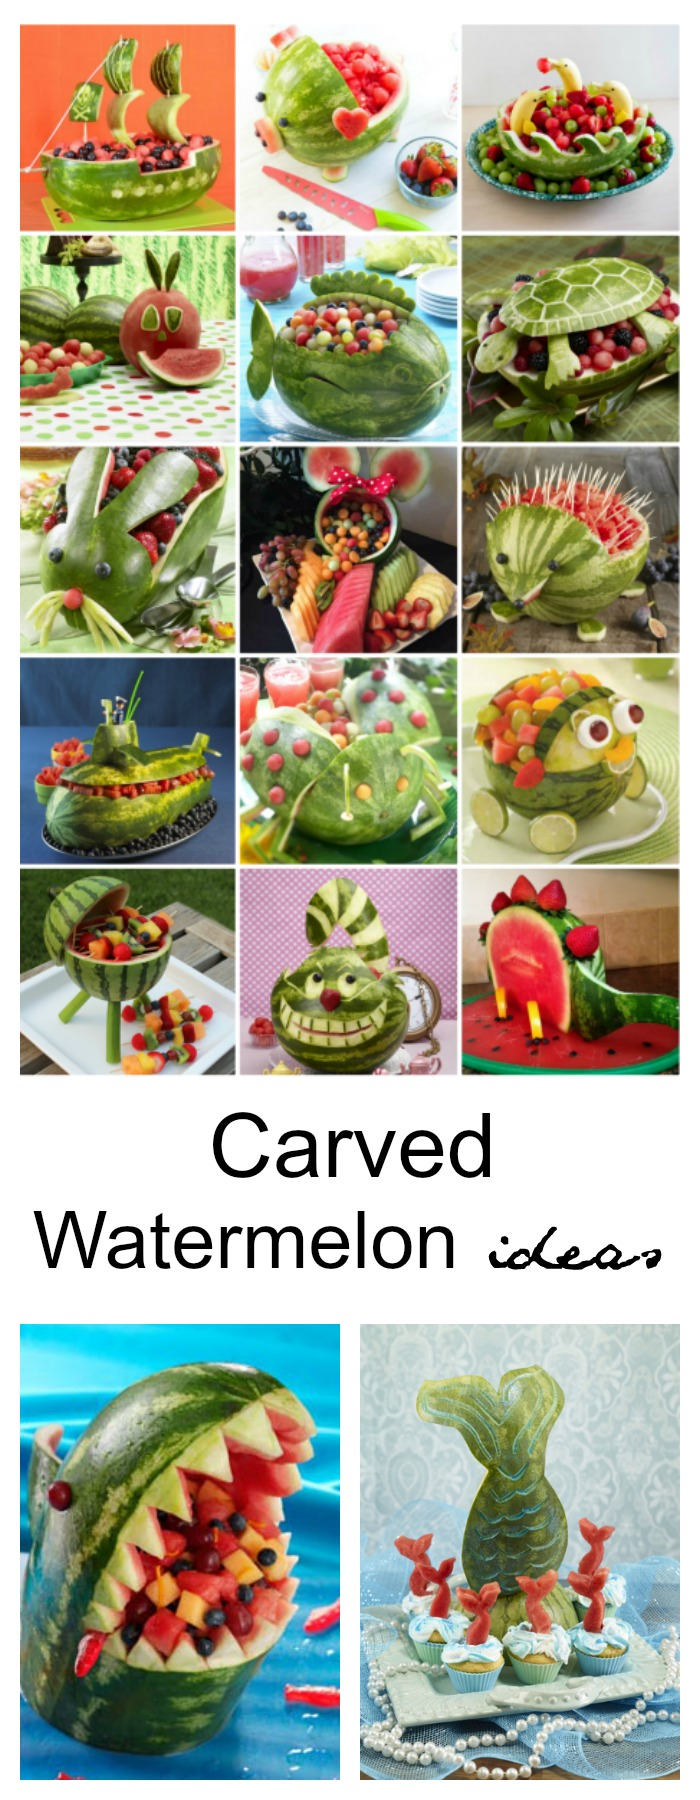 Carved-Watermelon-Ideas-Pin